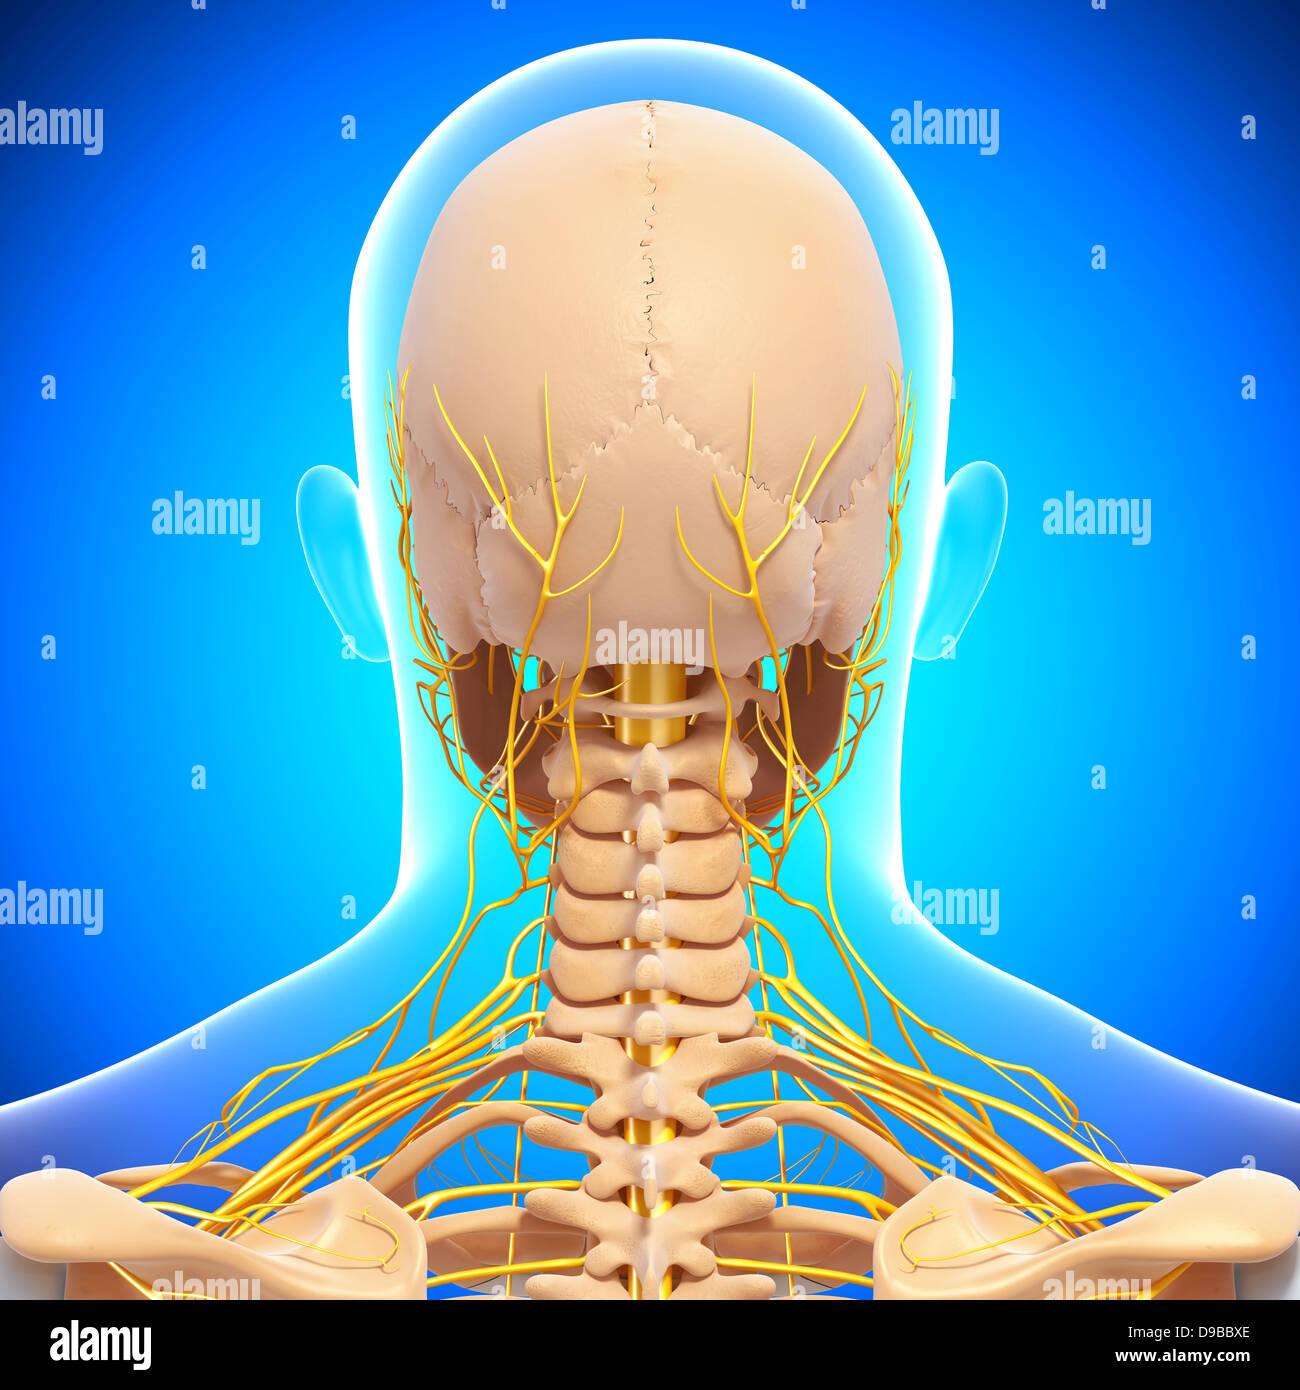 Nervous system of human head anatomy in x ray form stock photo nervous system of human head anatomy in x ray form ccuart Image collections